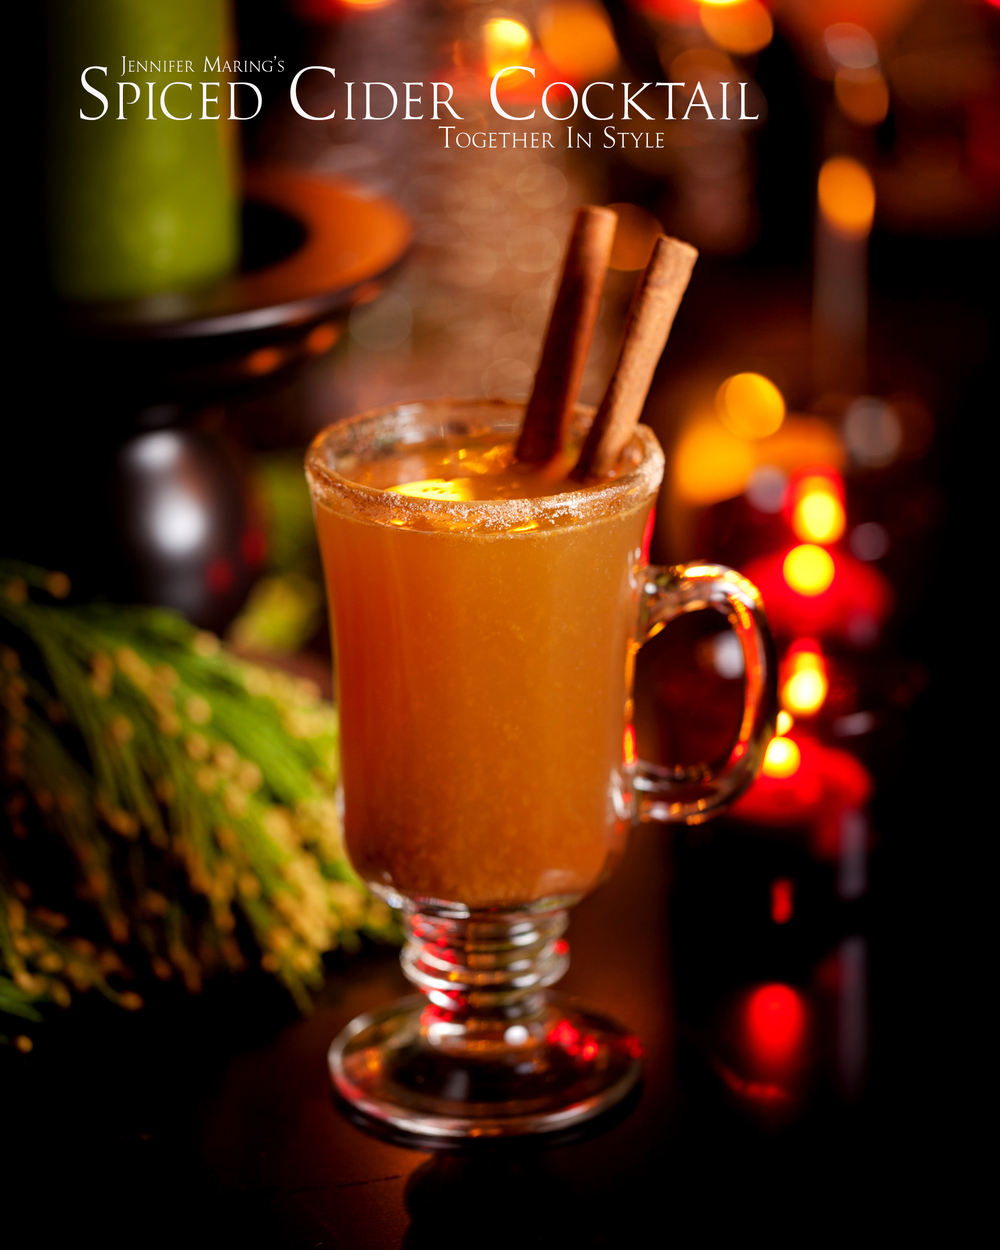 Spiced Cider Cocktail Recipe